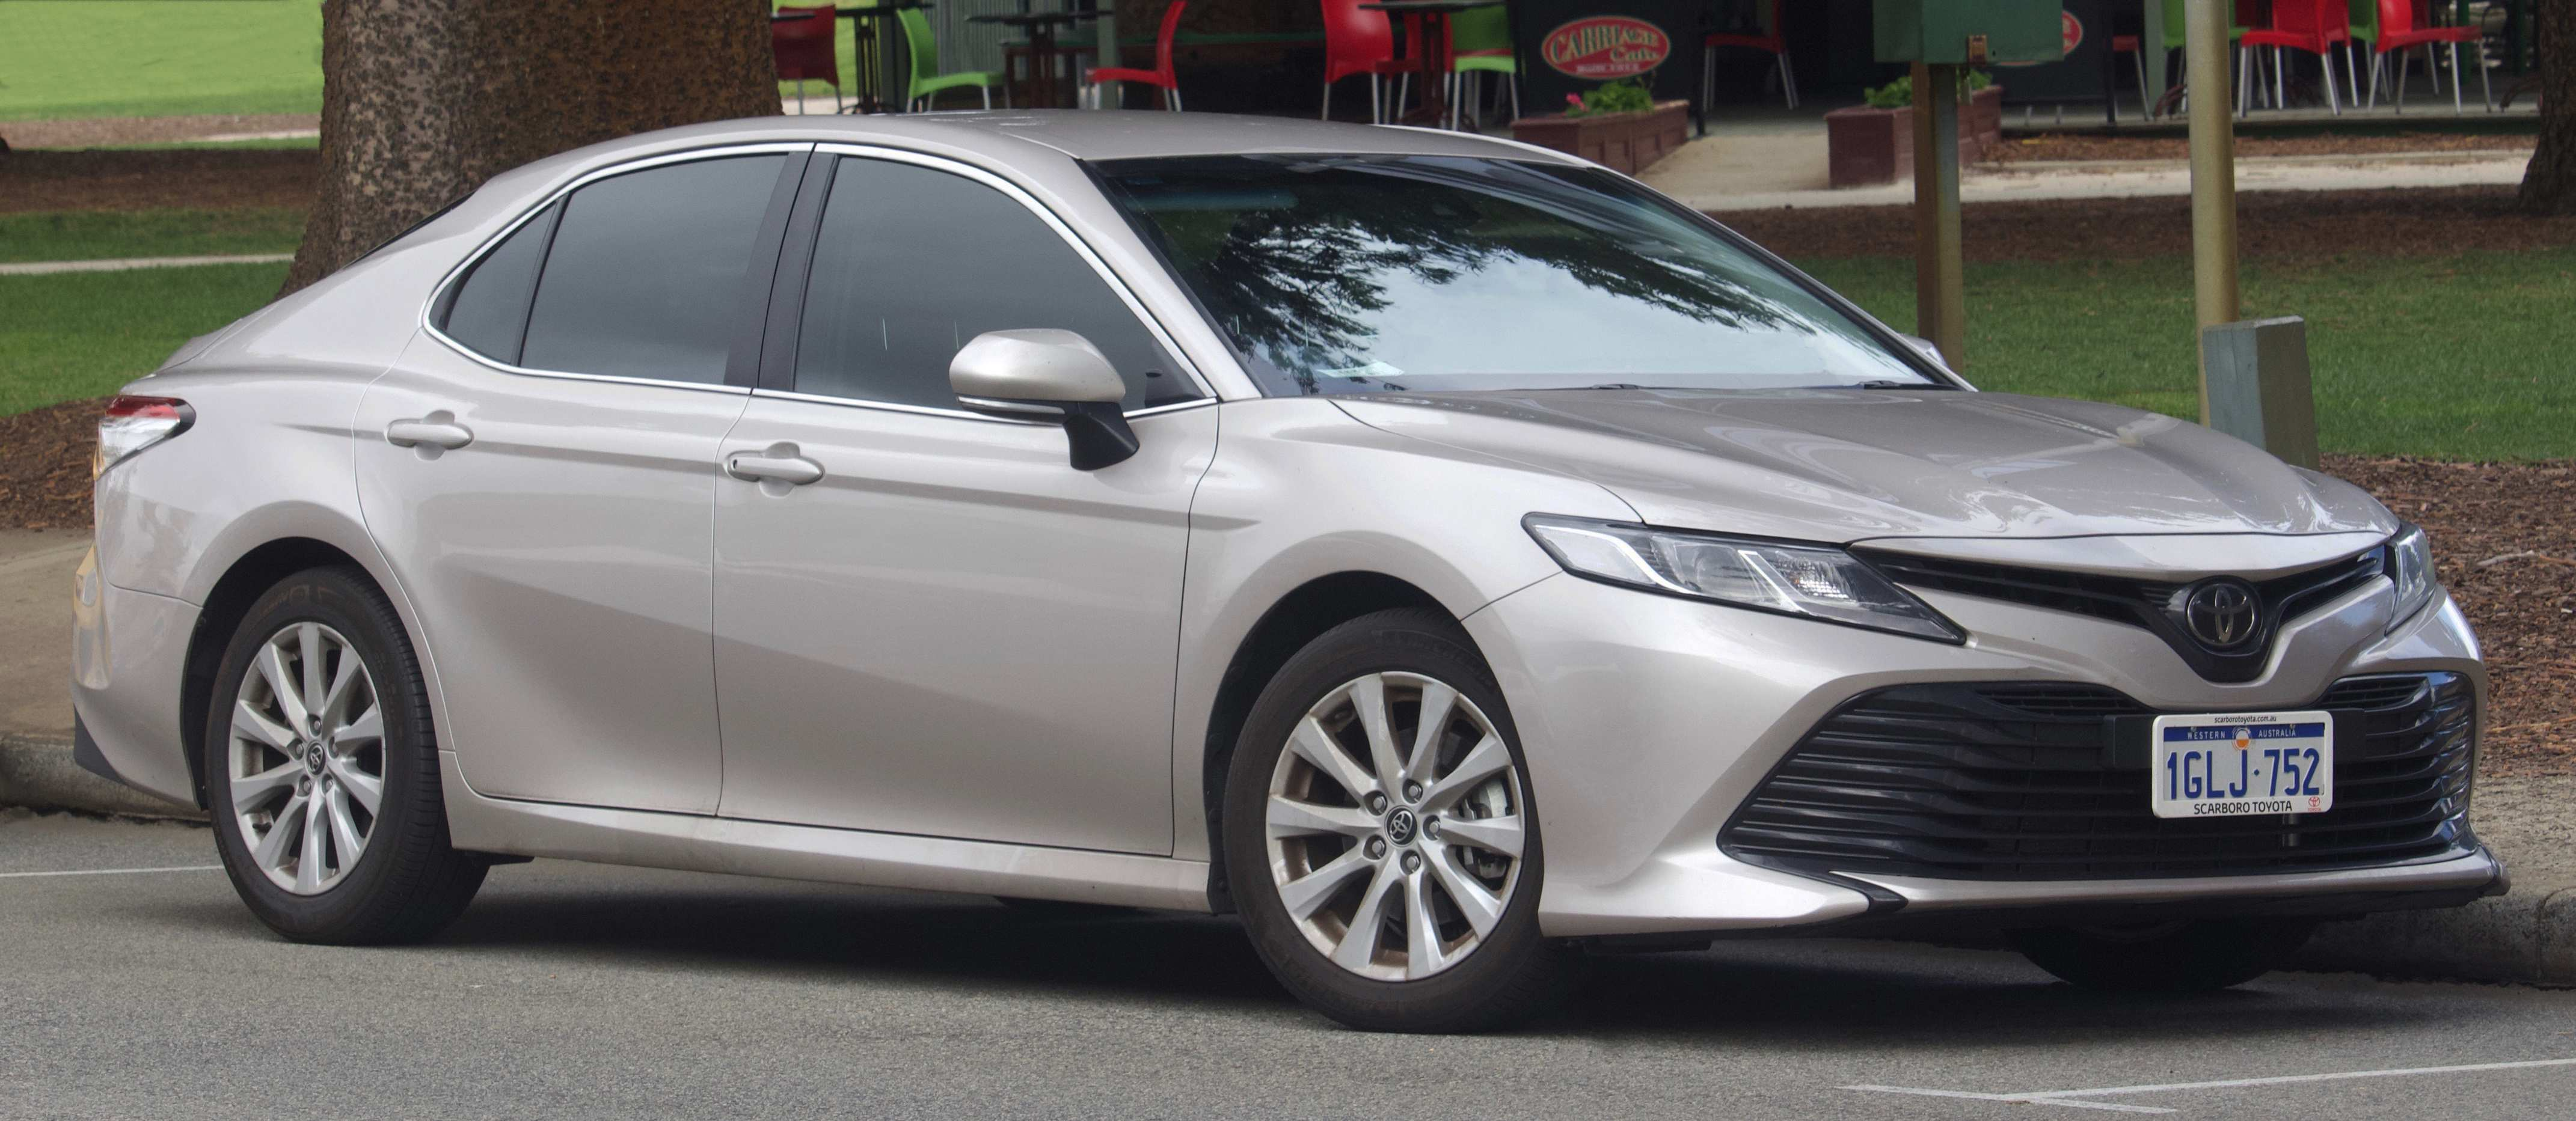 48 The 2020 All Toyota Camry History